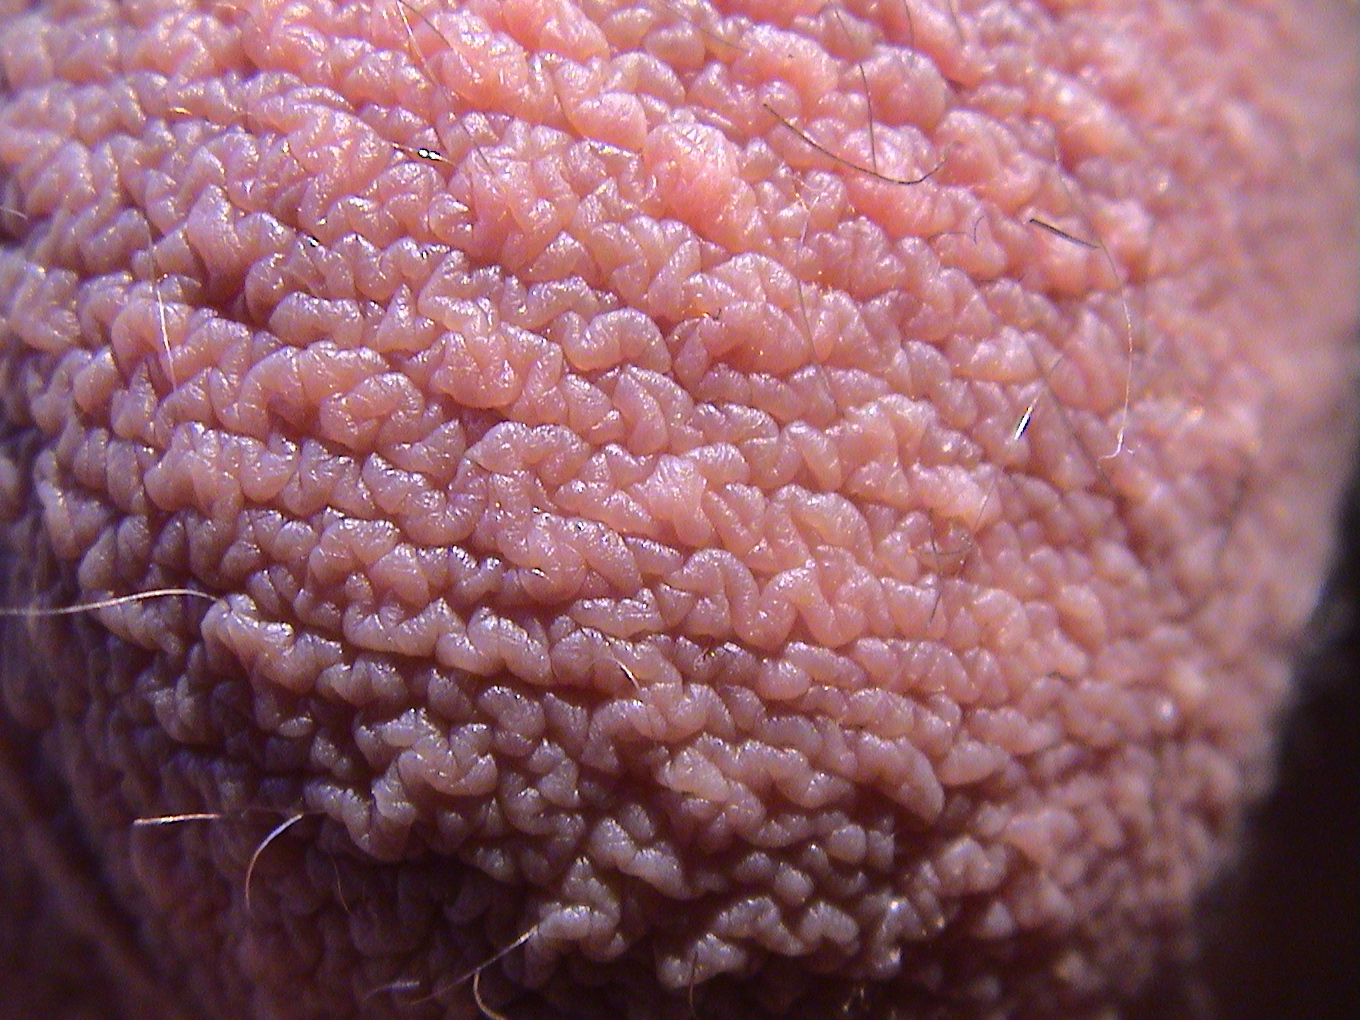 photo testicule homme